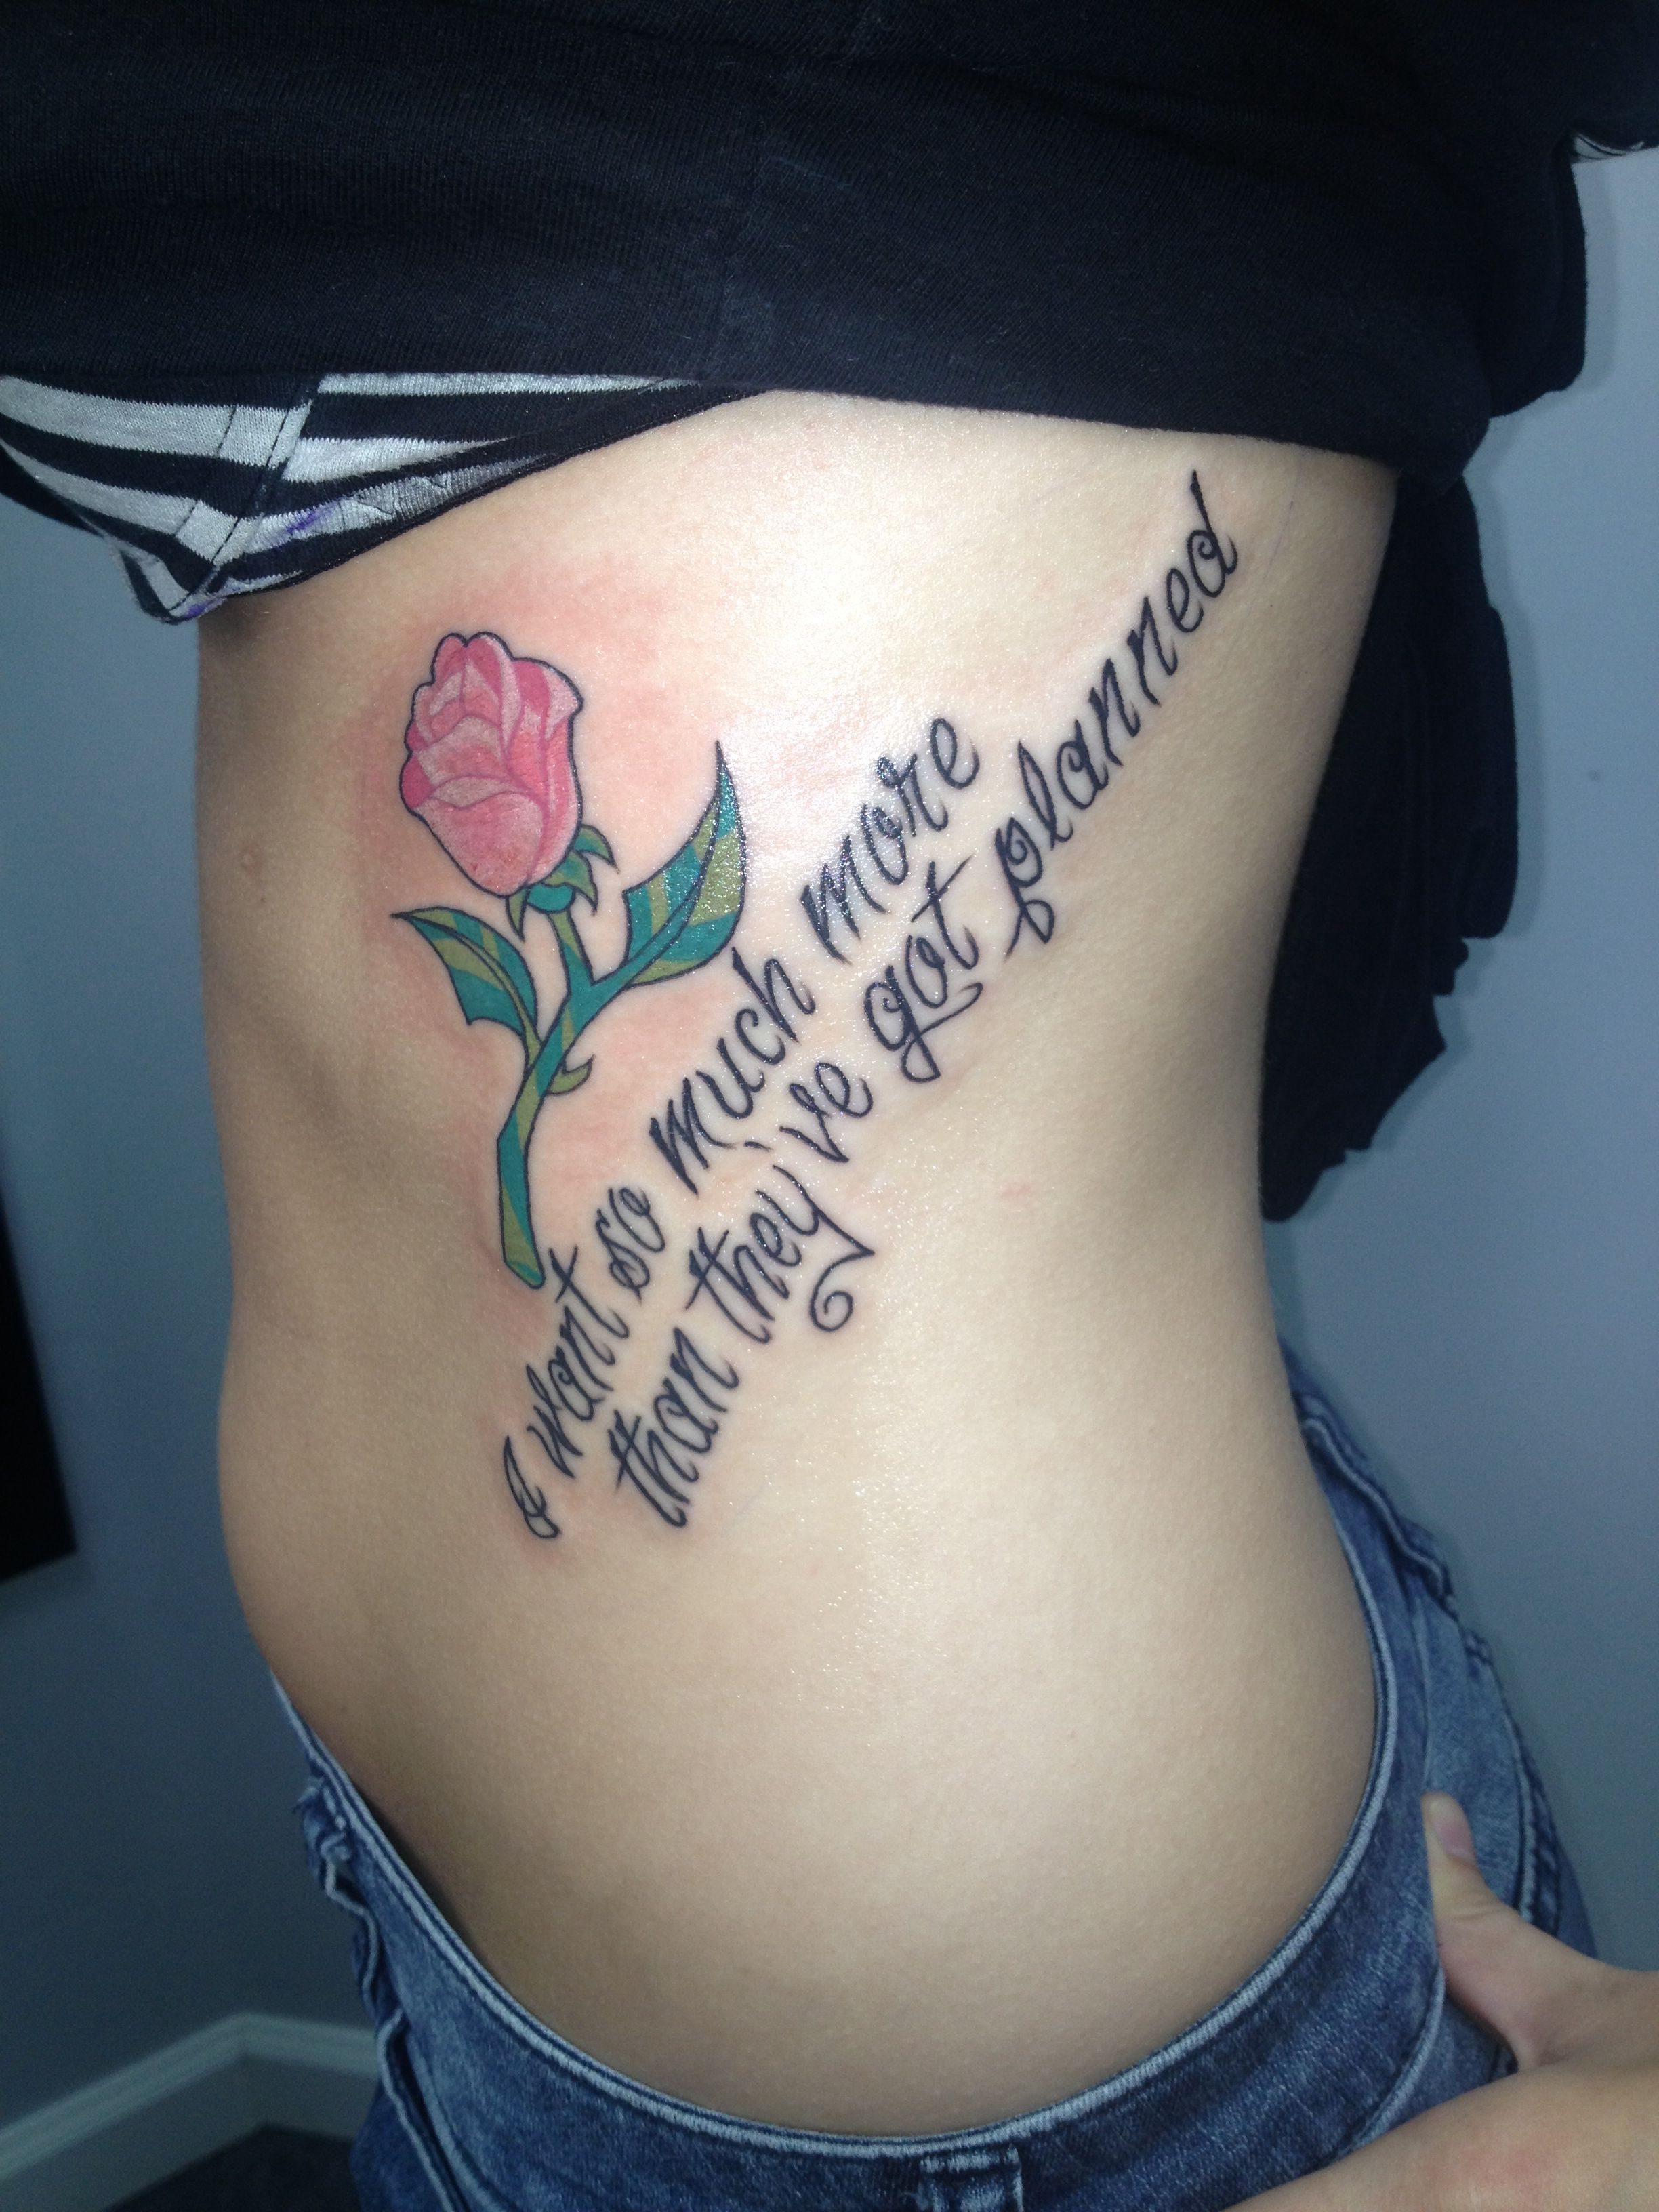 Beast and the beauty tattoo quotes photo images